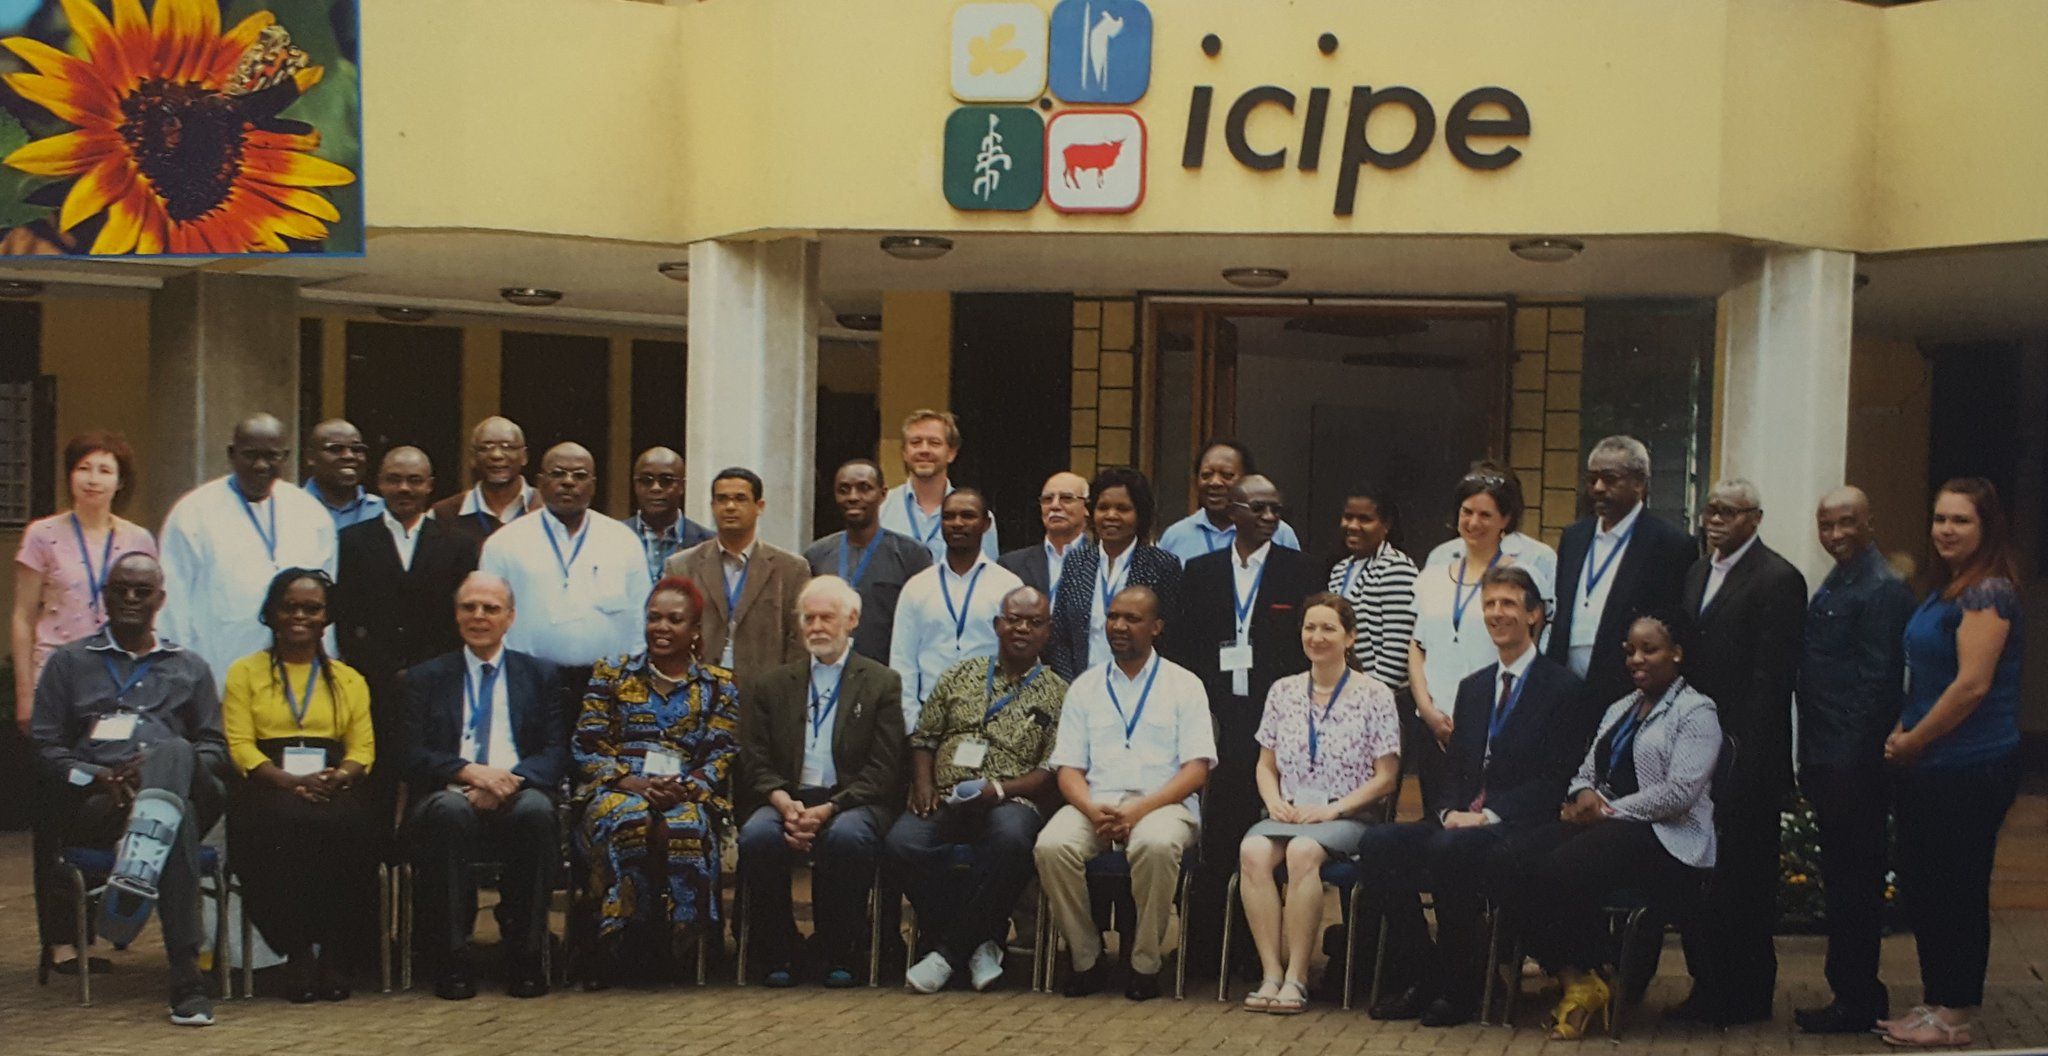 Group photo at ICIPE